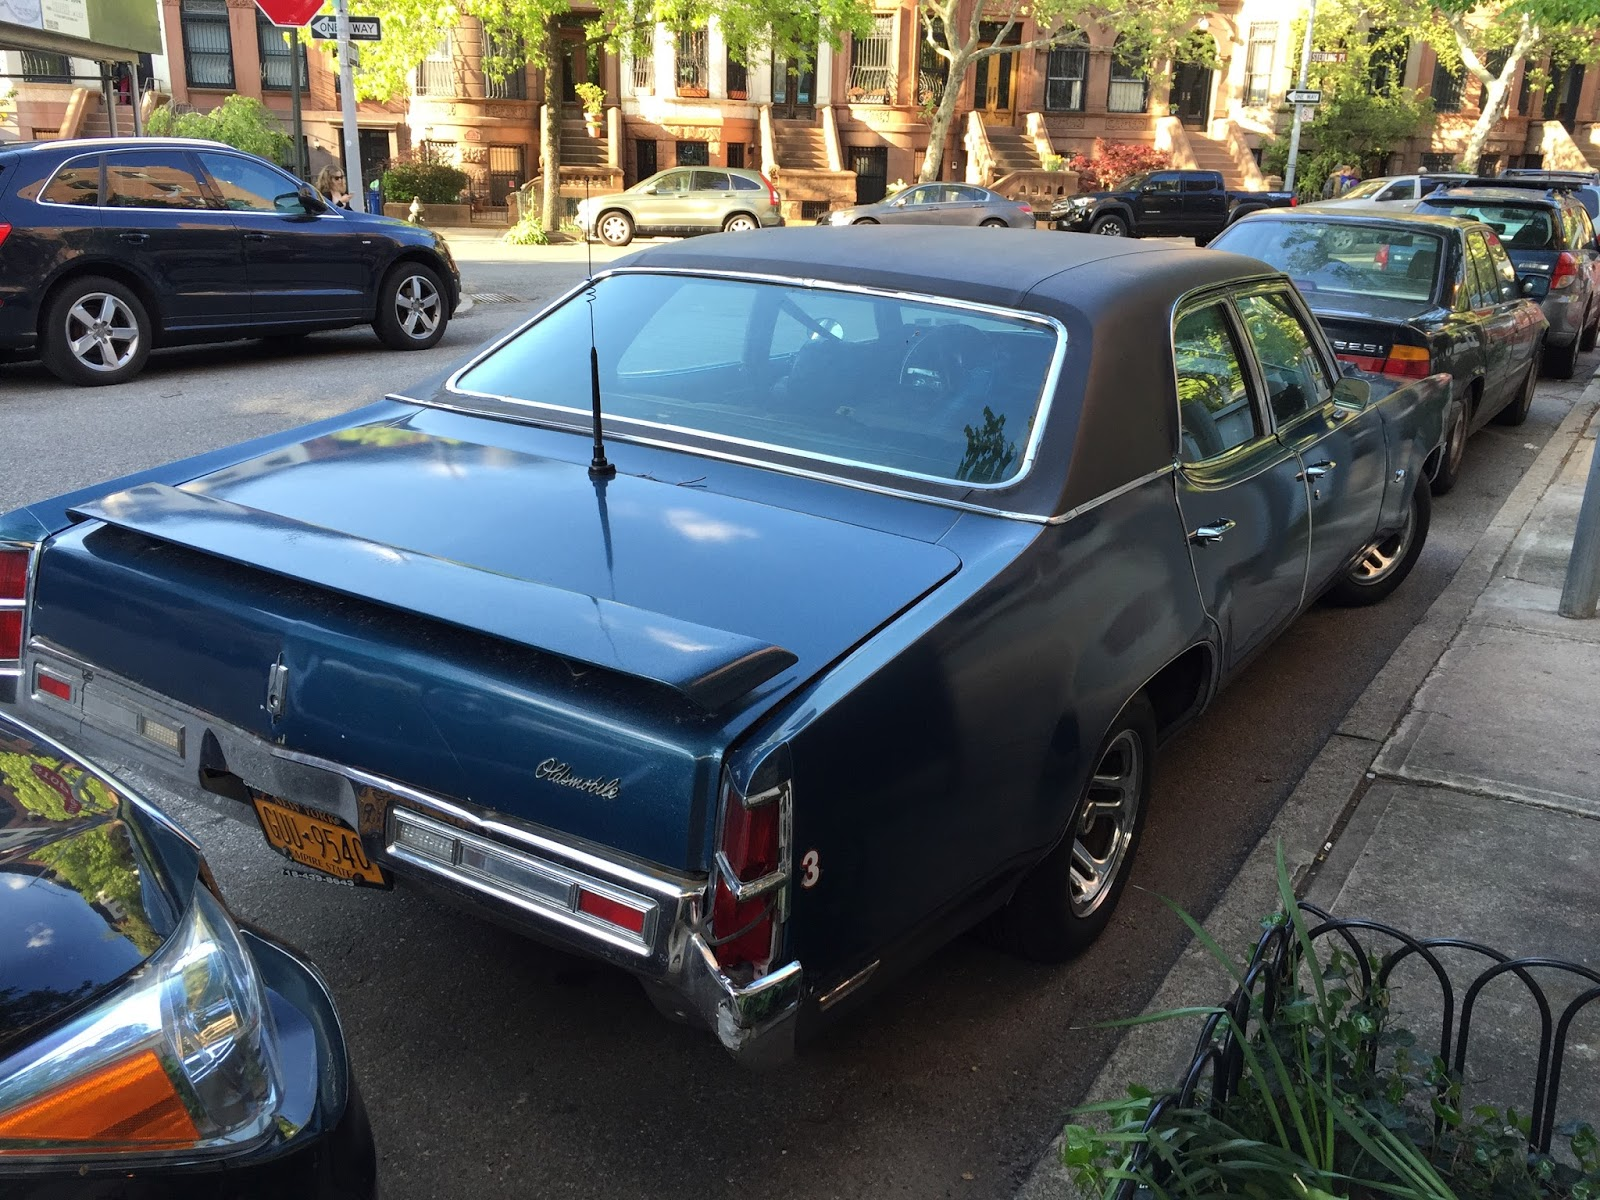 NYC Hoopties - Whips Rides Buckets Junkers and Clunkers: December 2016